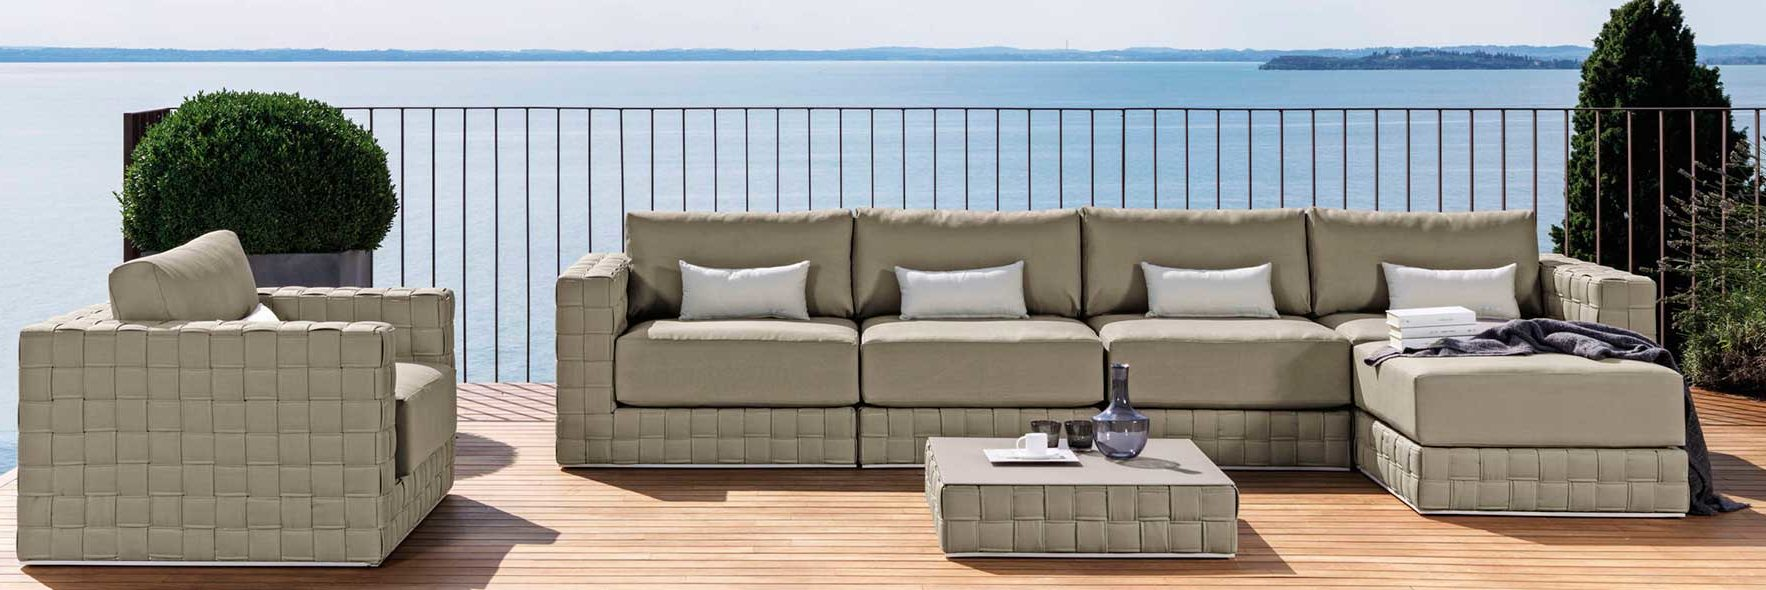 Baron Match Sectional Modular Couture Outdoor